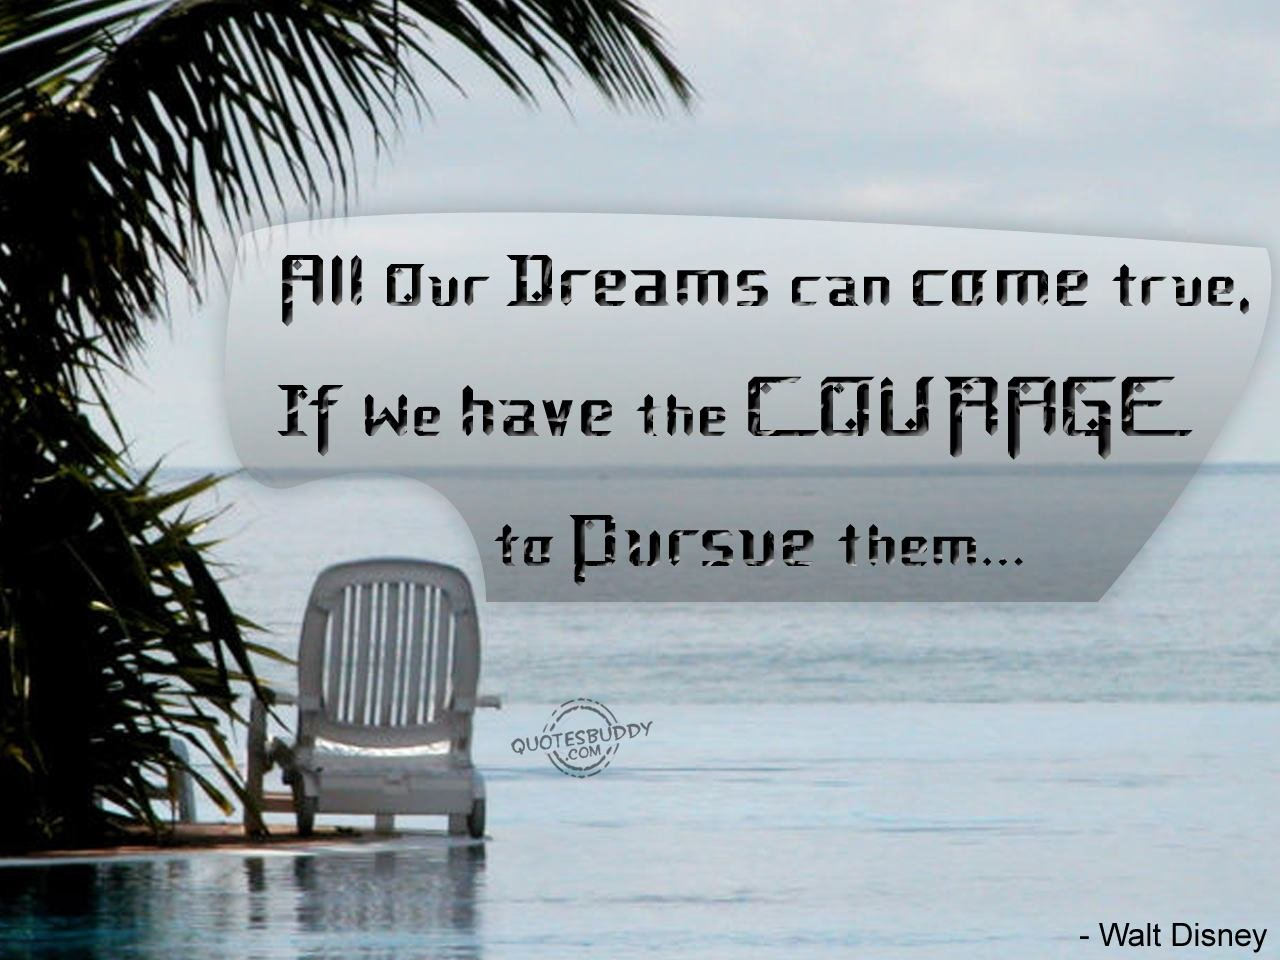 Quotes about dreams can come true 86 quotes altavistaventures Image collections